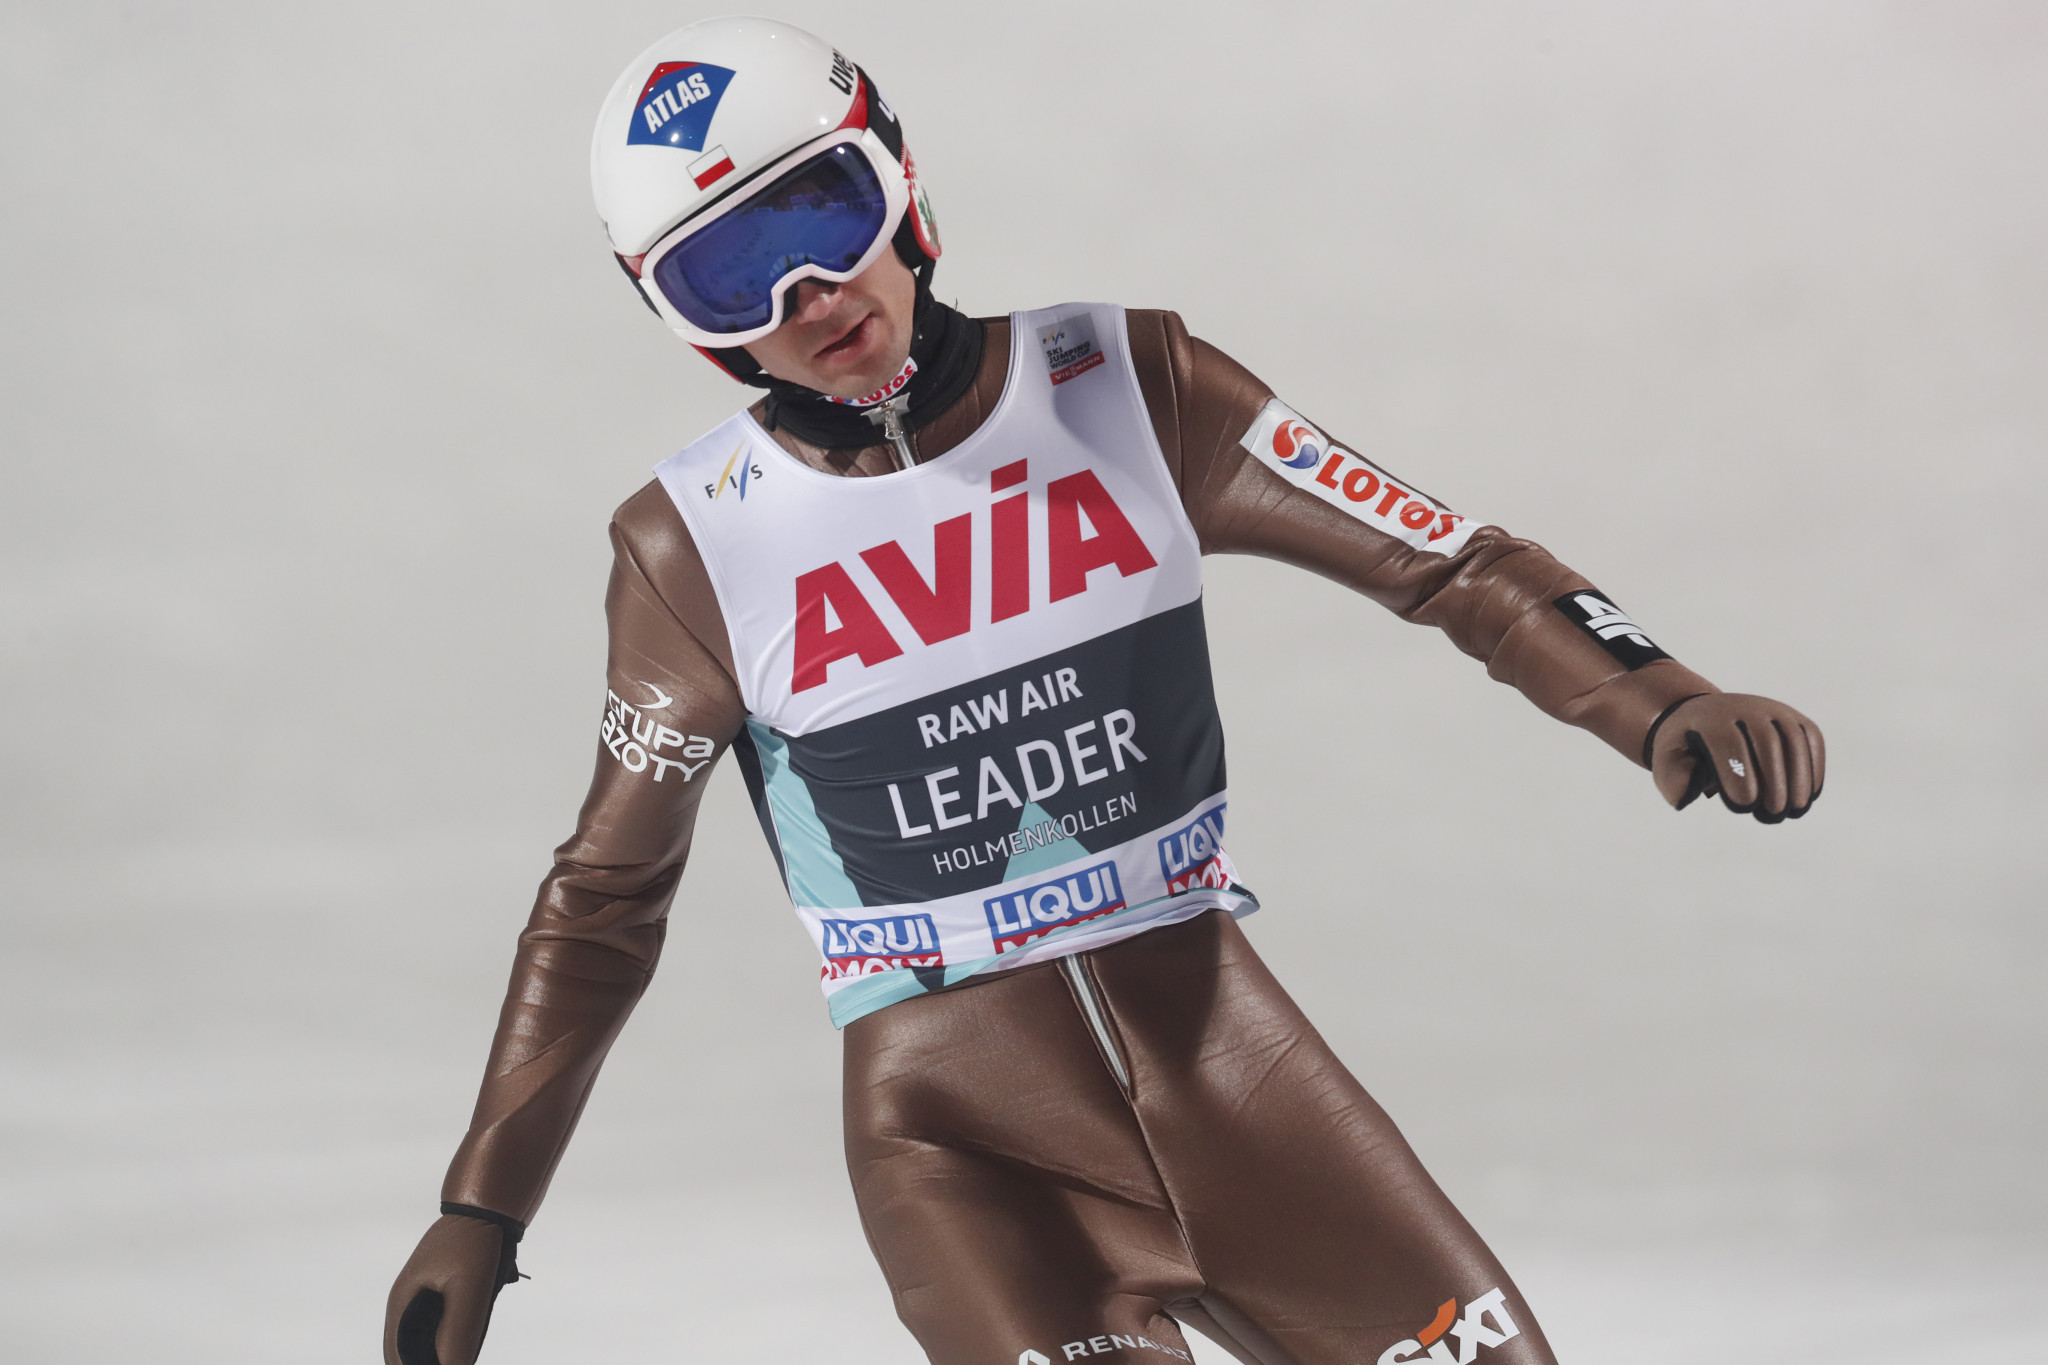 Stoch soars to FIS Ski Jumping World Cup success in Lillehammer